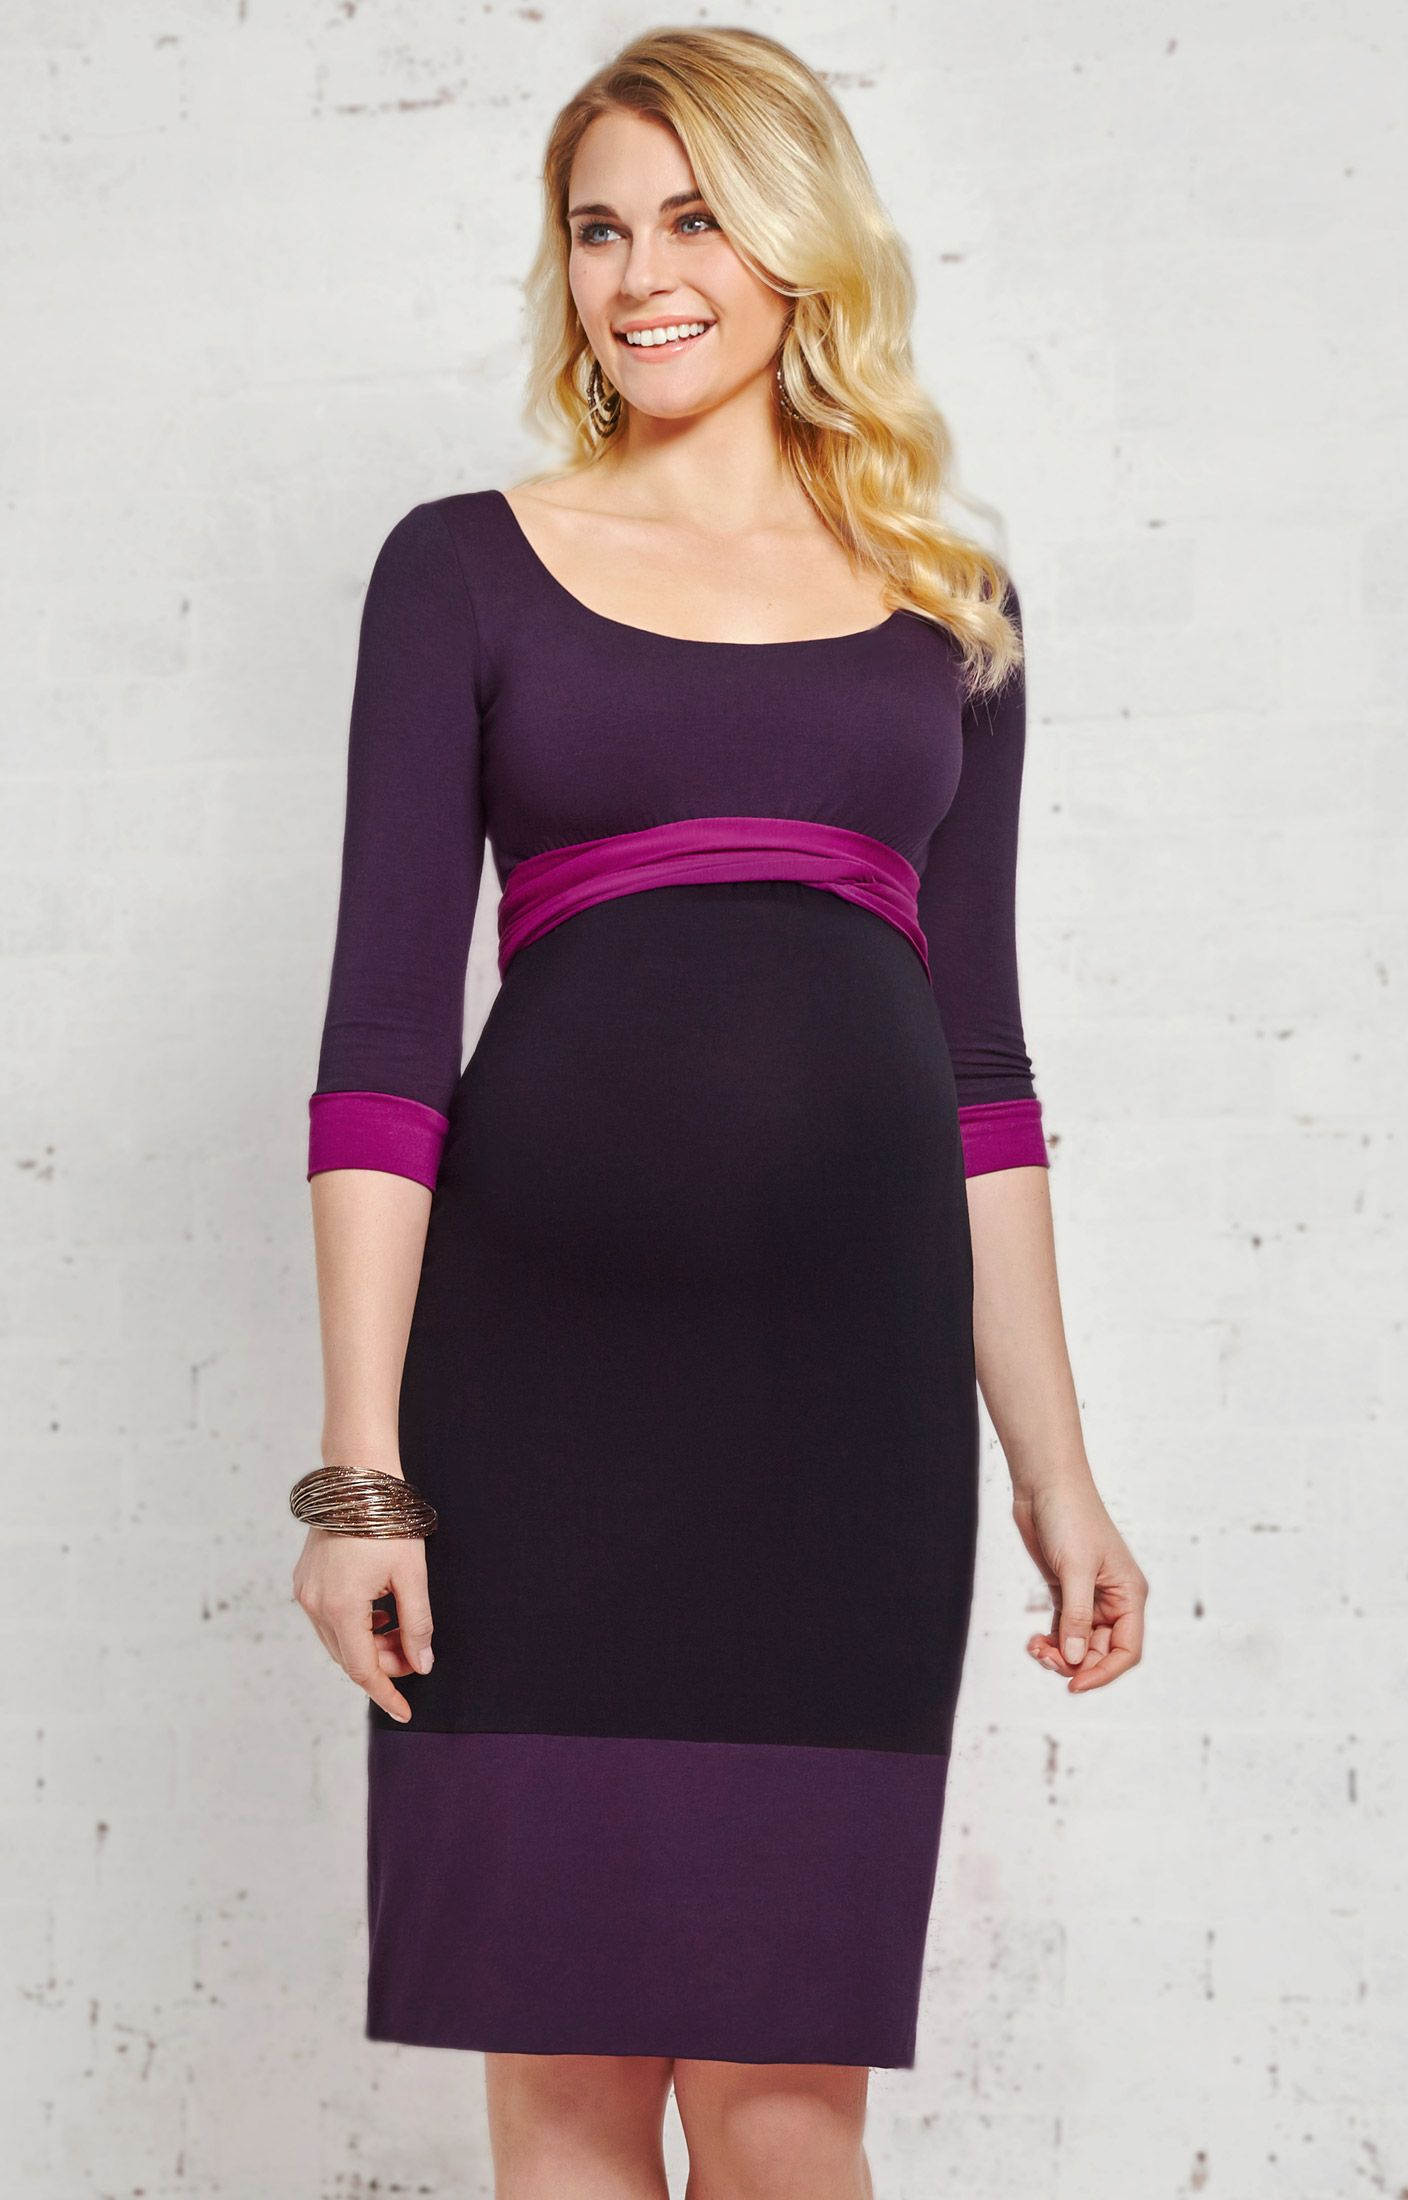 Colour block dress maternity dresses tiffany rose and color colour block dress ombrellifo Image collections